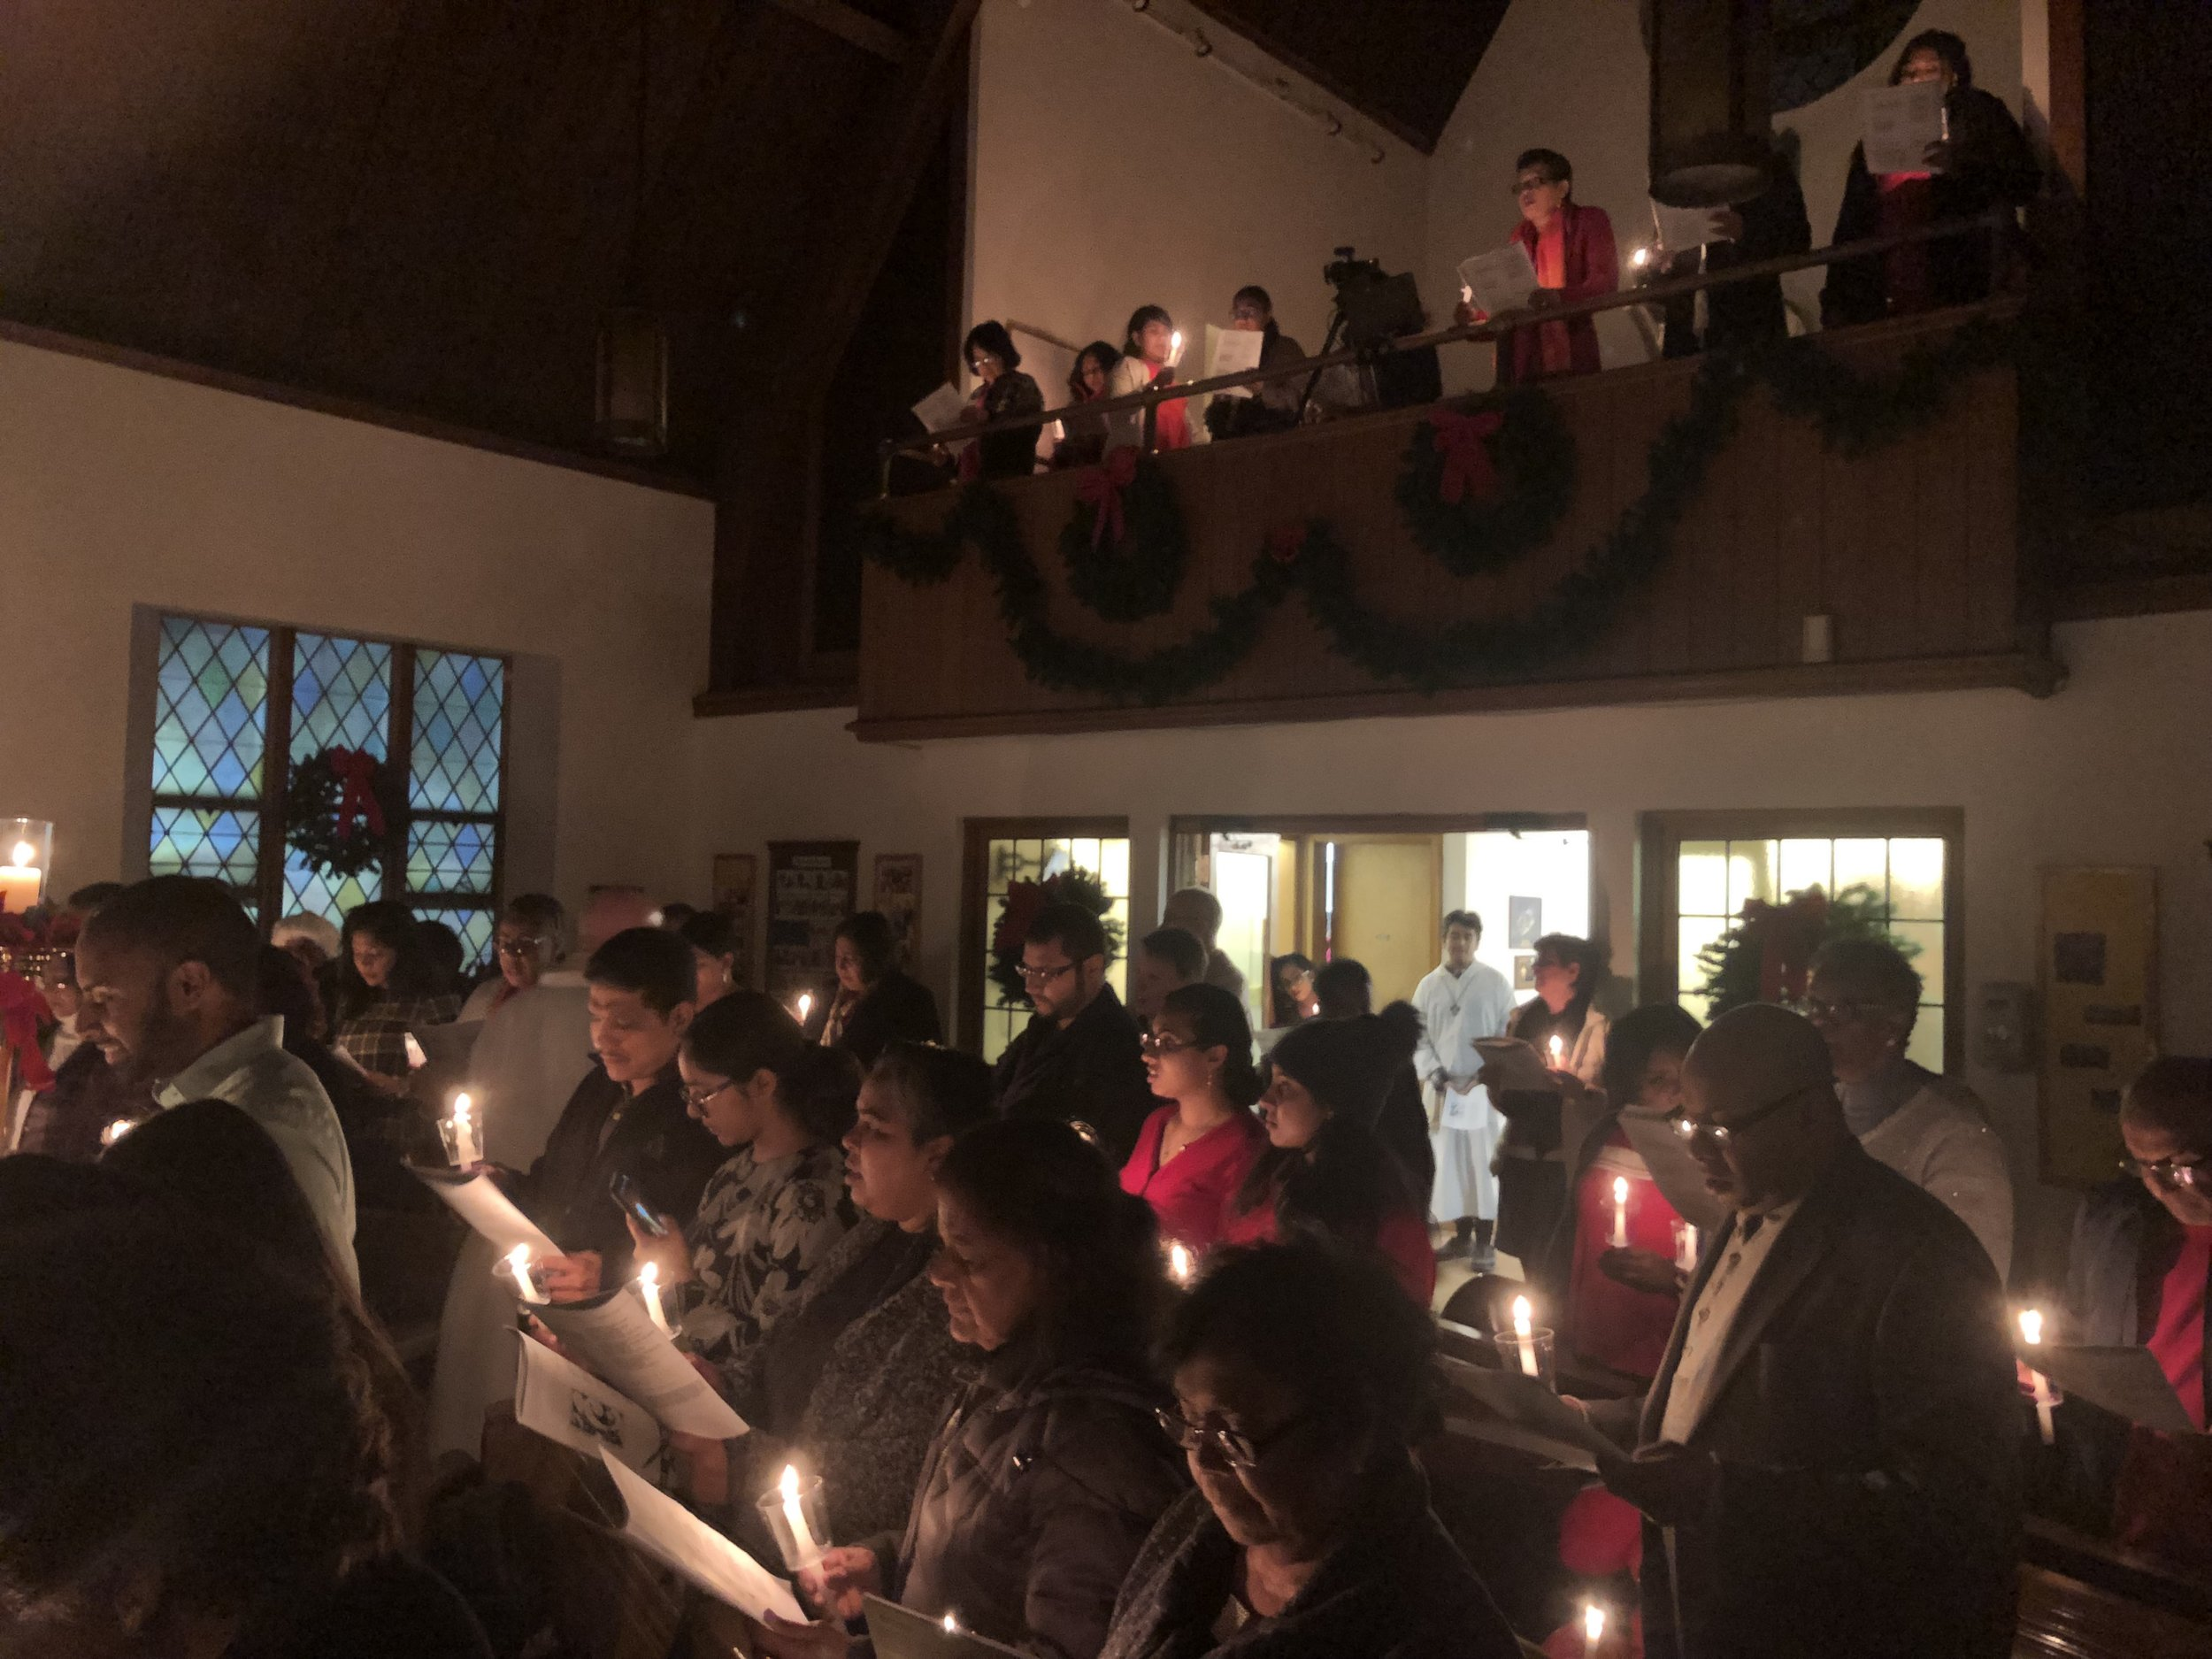 8:00pm Christmas Eve service at Our Saviour Lutheran Jamaica.